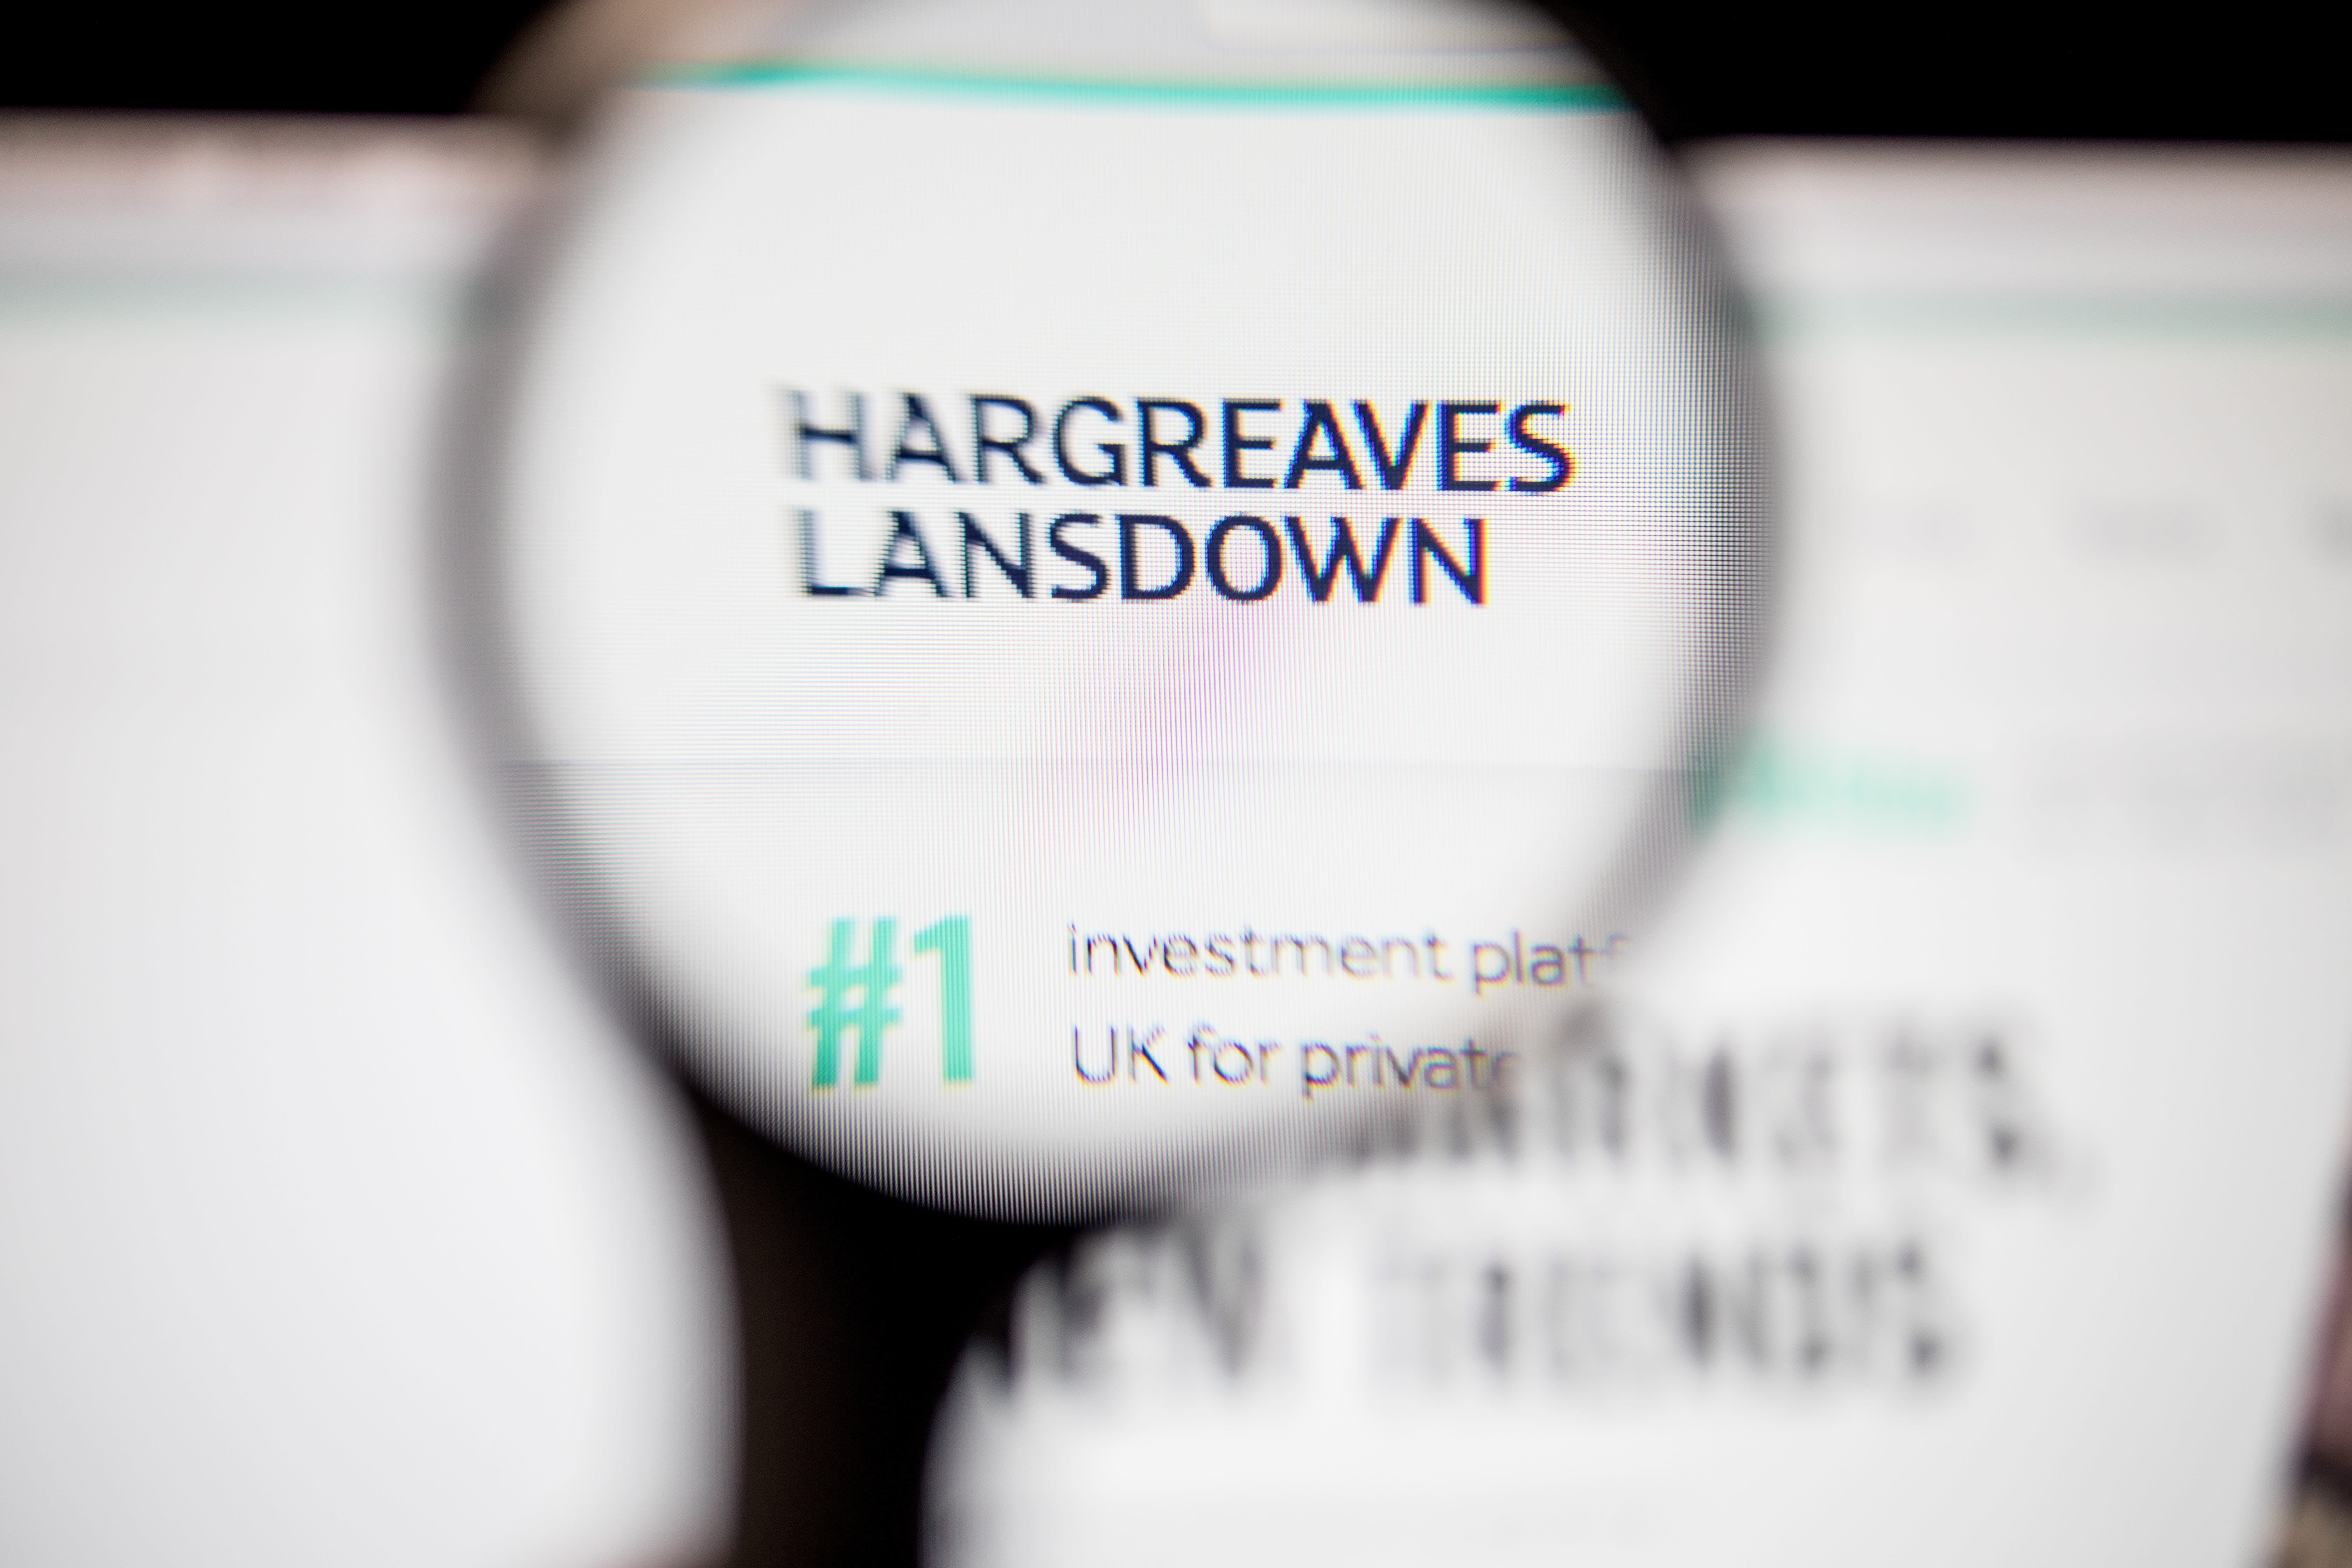 Share trading boom boosts Hargreaves profits